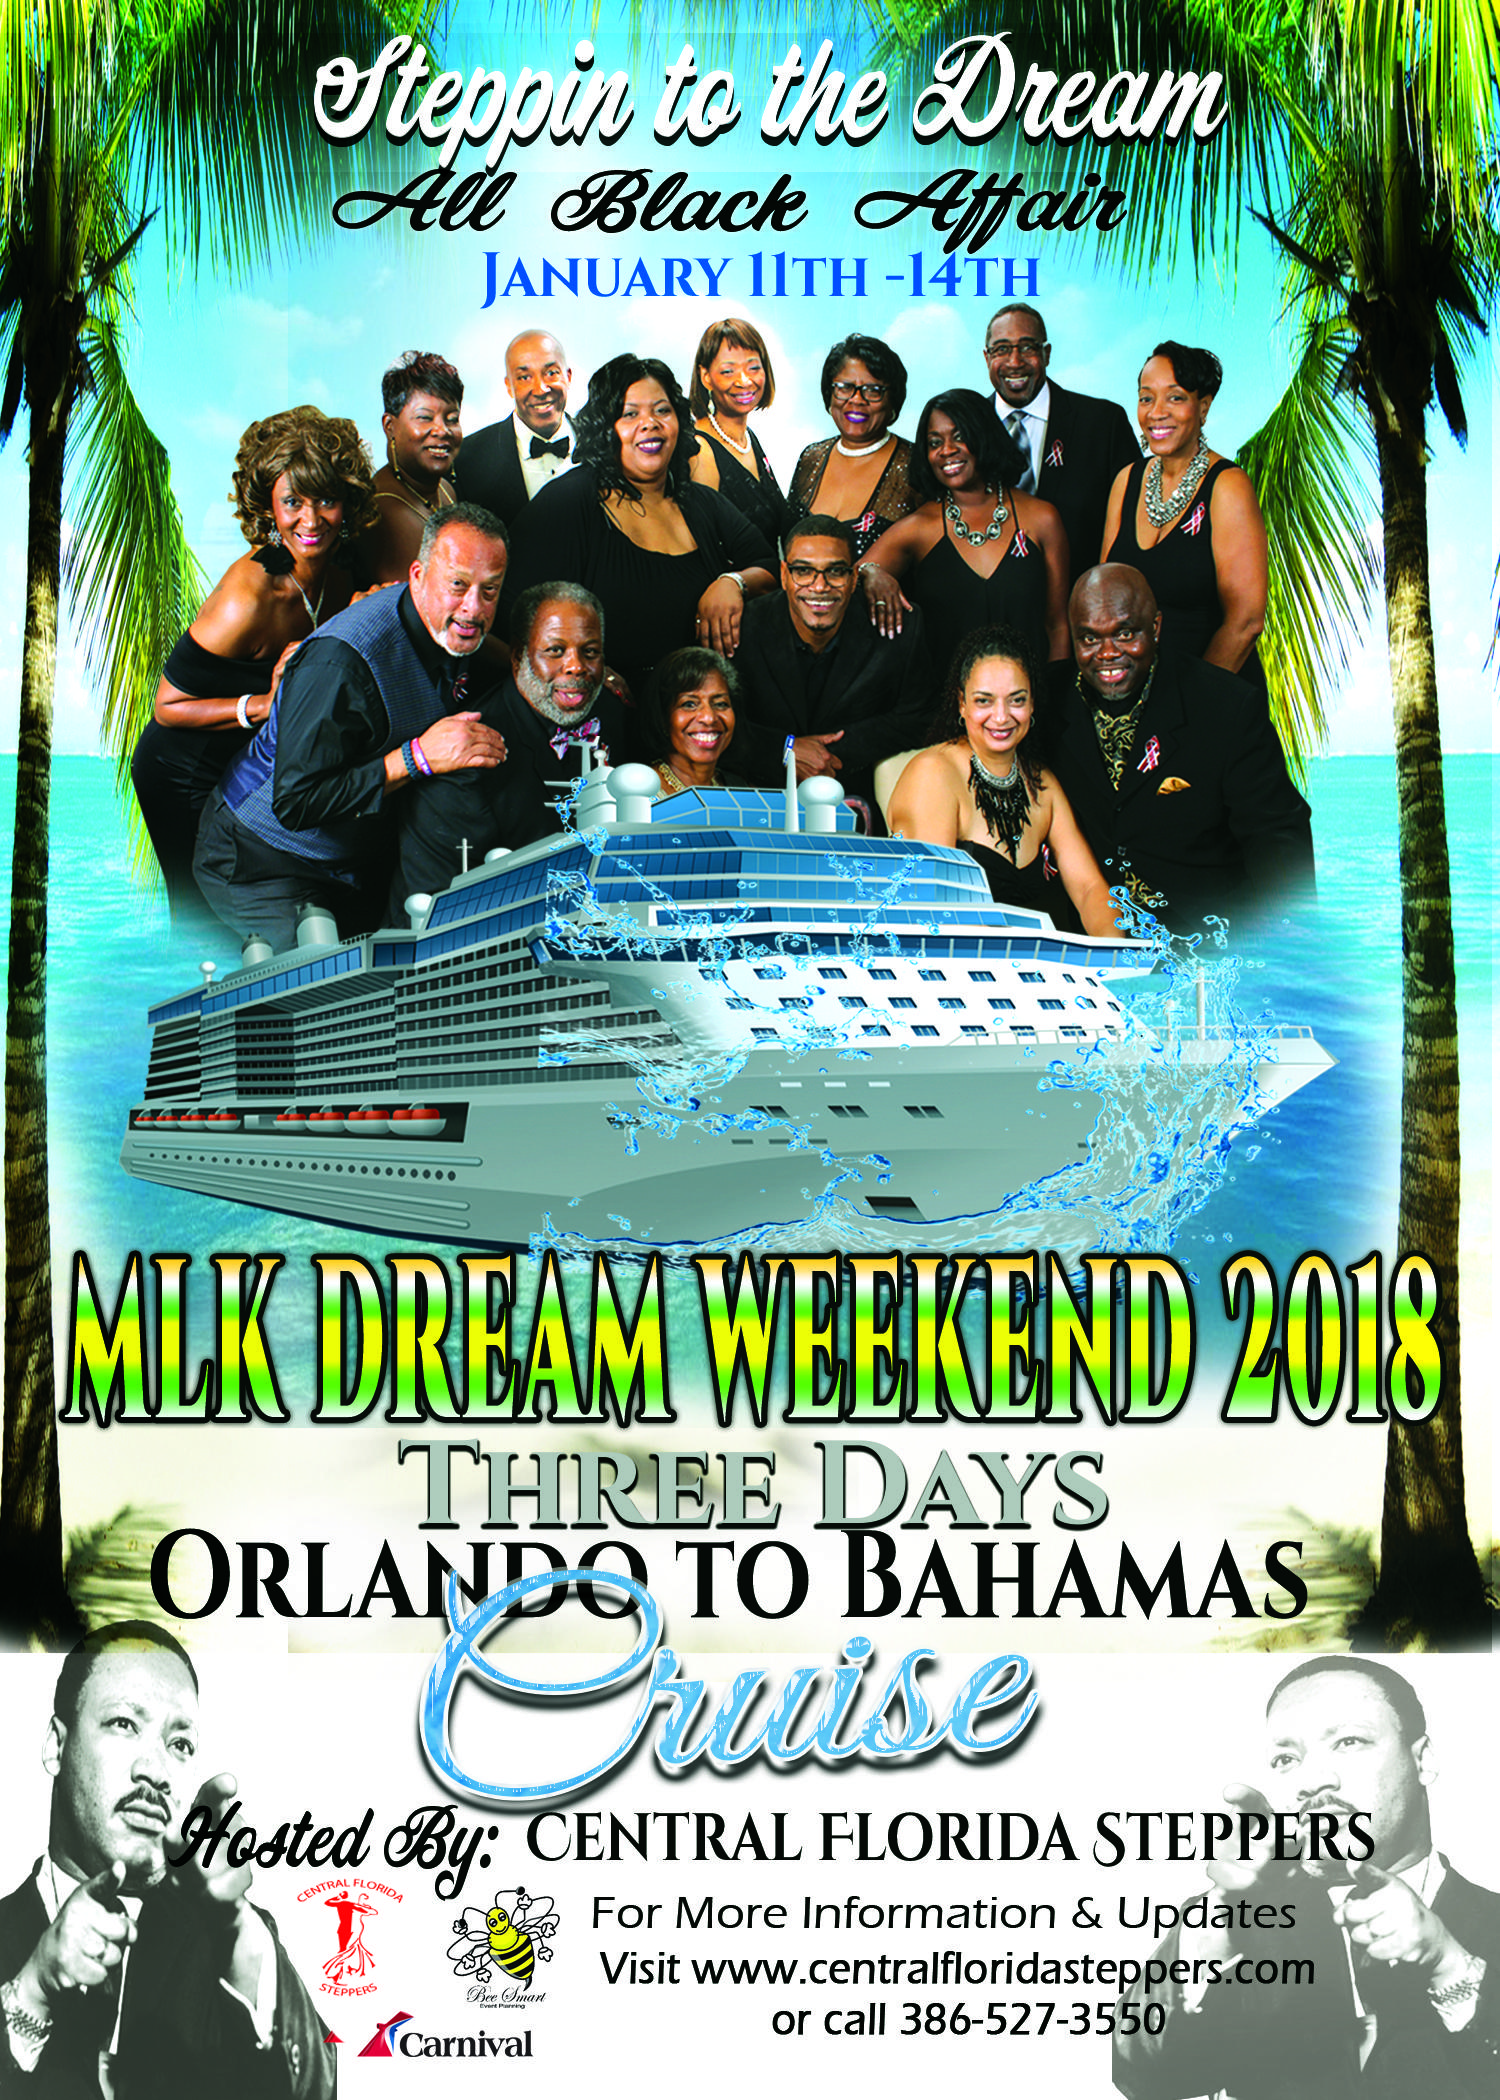 STEPPIN TO THE DREAM 2018 CRUISE